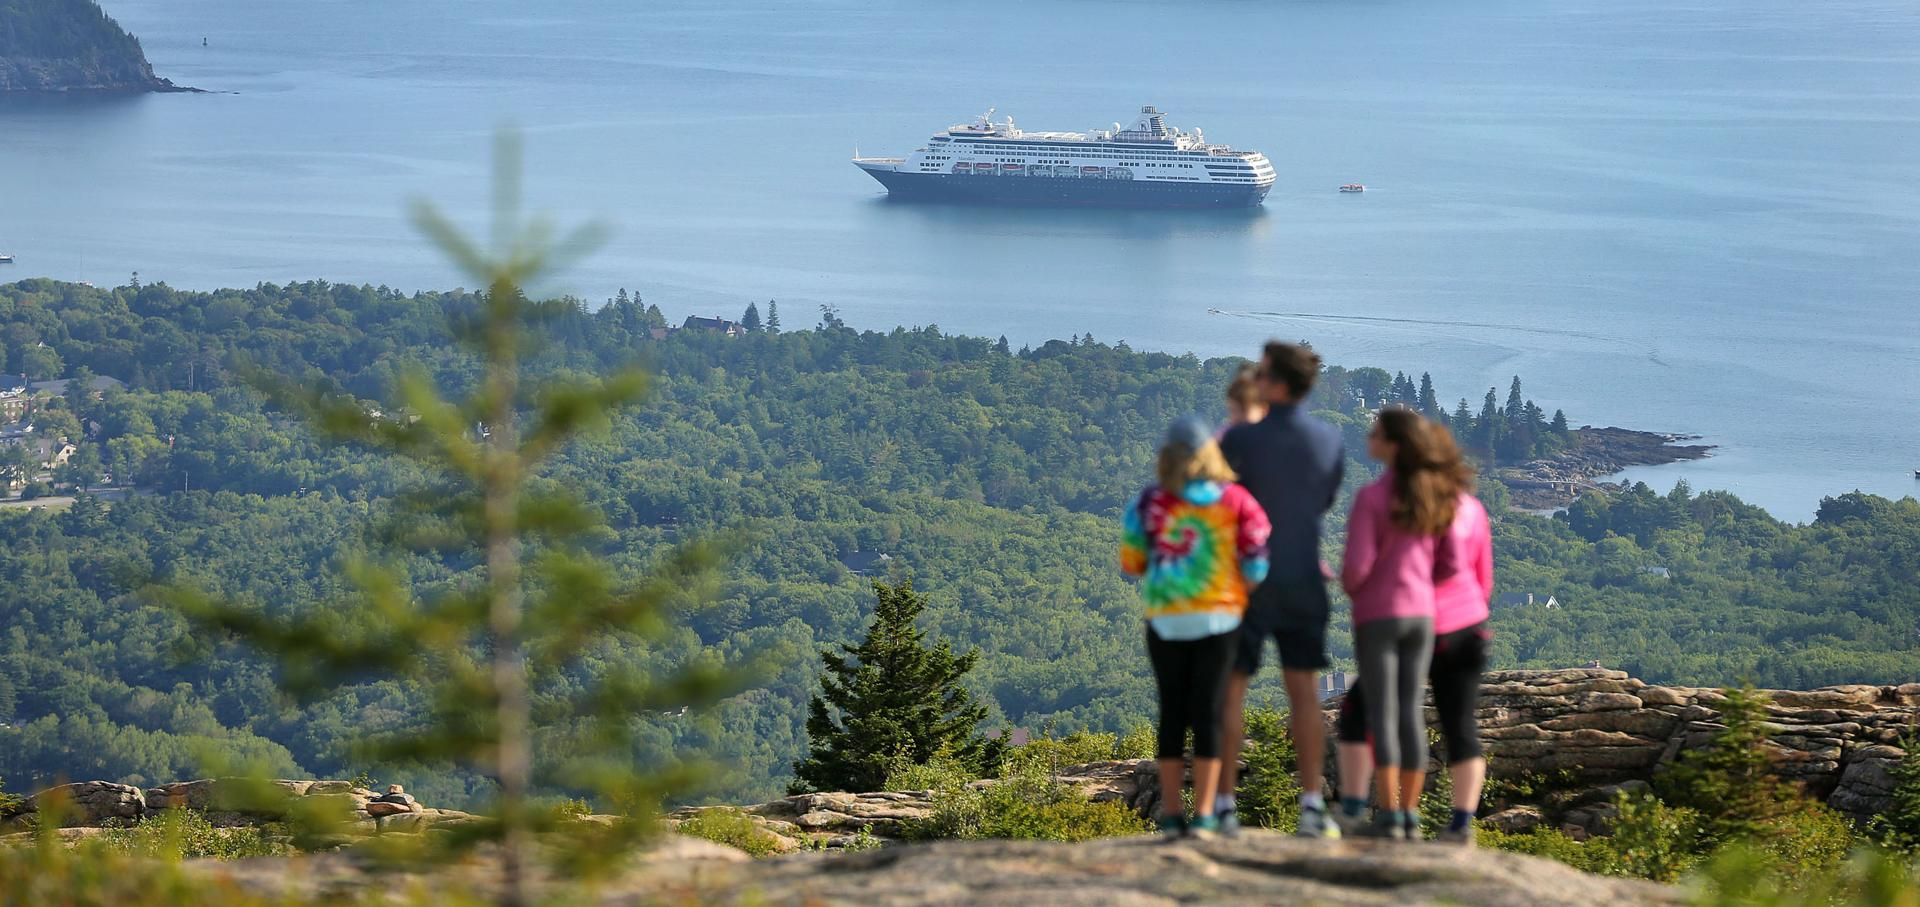 This view from Cadillac Mountain in Acadia National Park includes the cruise ship Maasdam anchored in Bar Harbor.